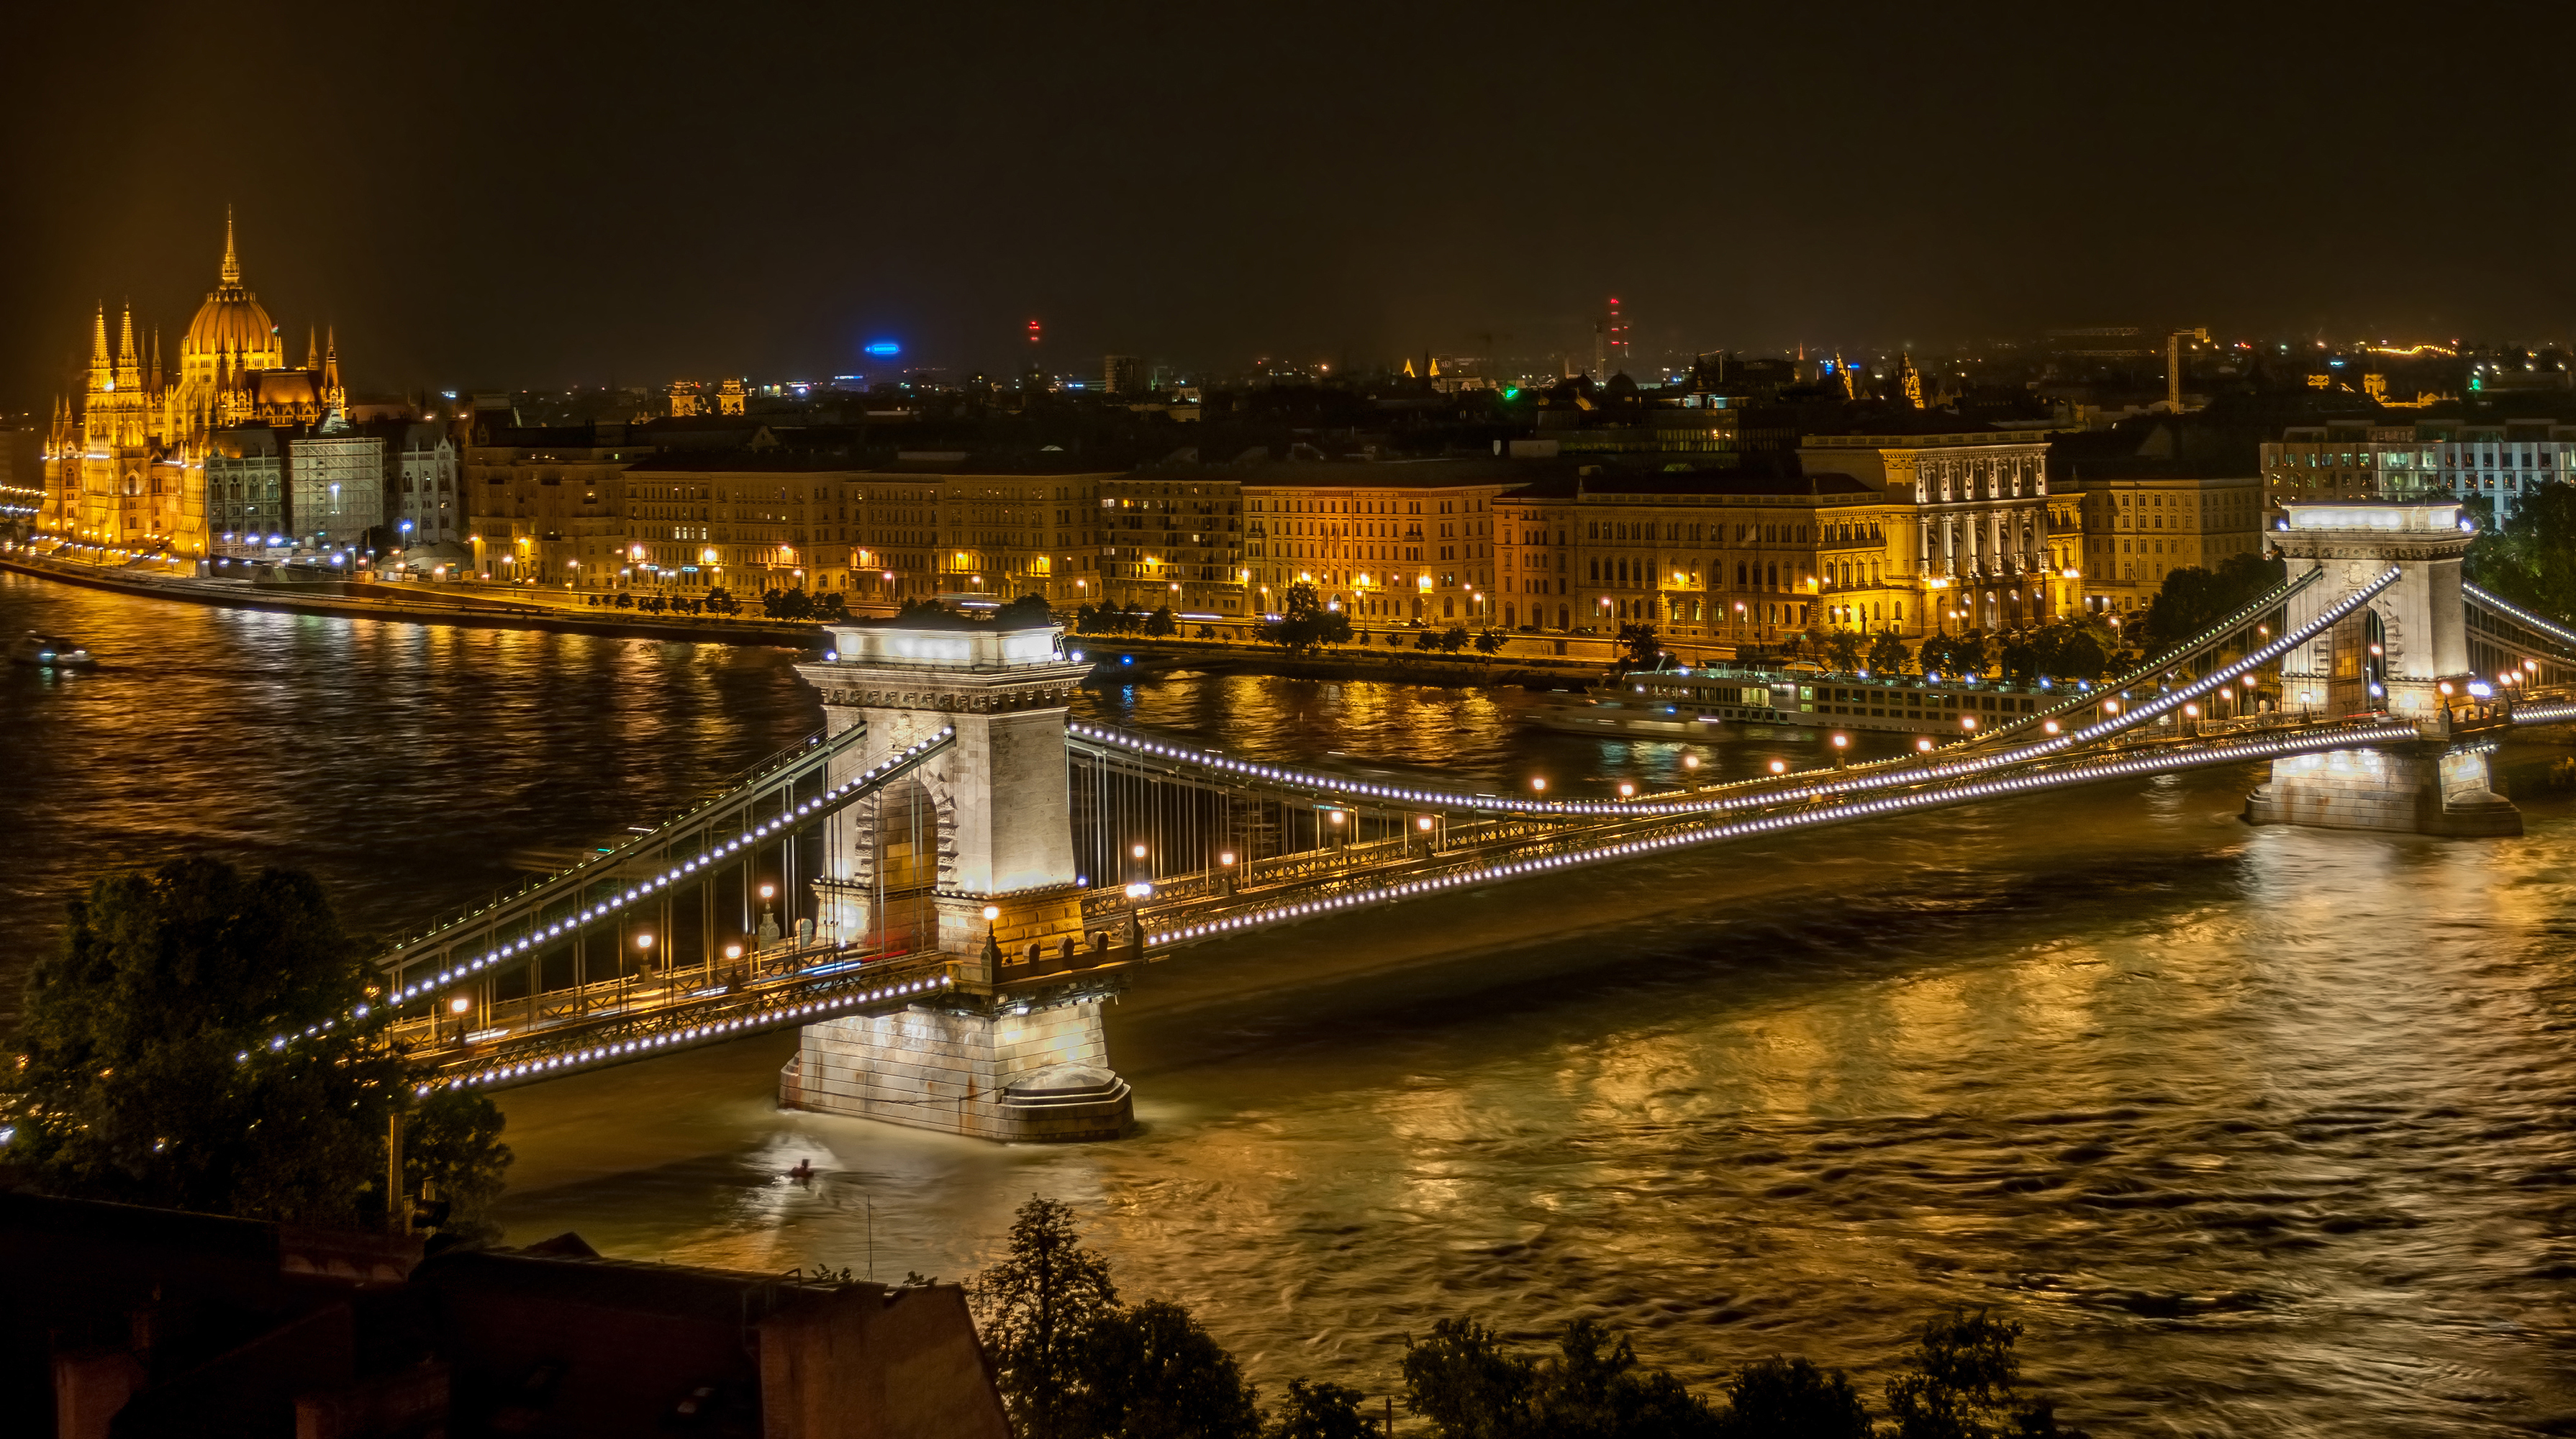 https://upload.wikimedia.org/wikipedia/commons/f/fd/Sz%C3%A9chenyi_Chain_Bridge_in_Budapest_at_night.jpg